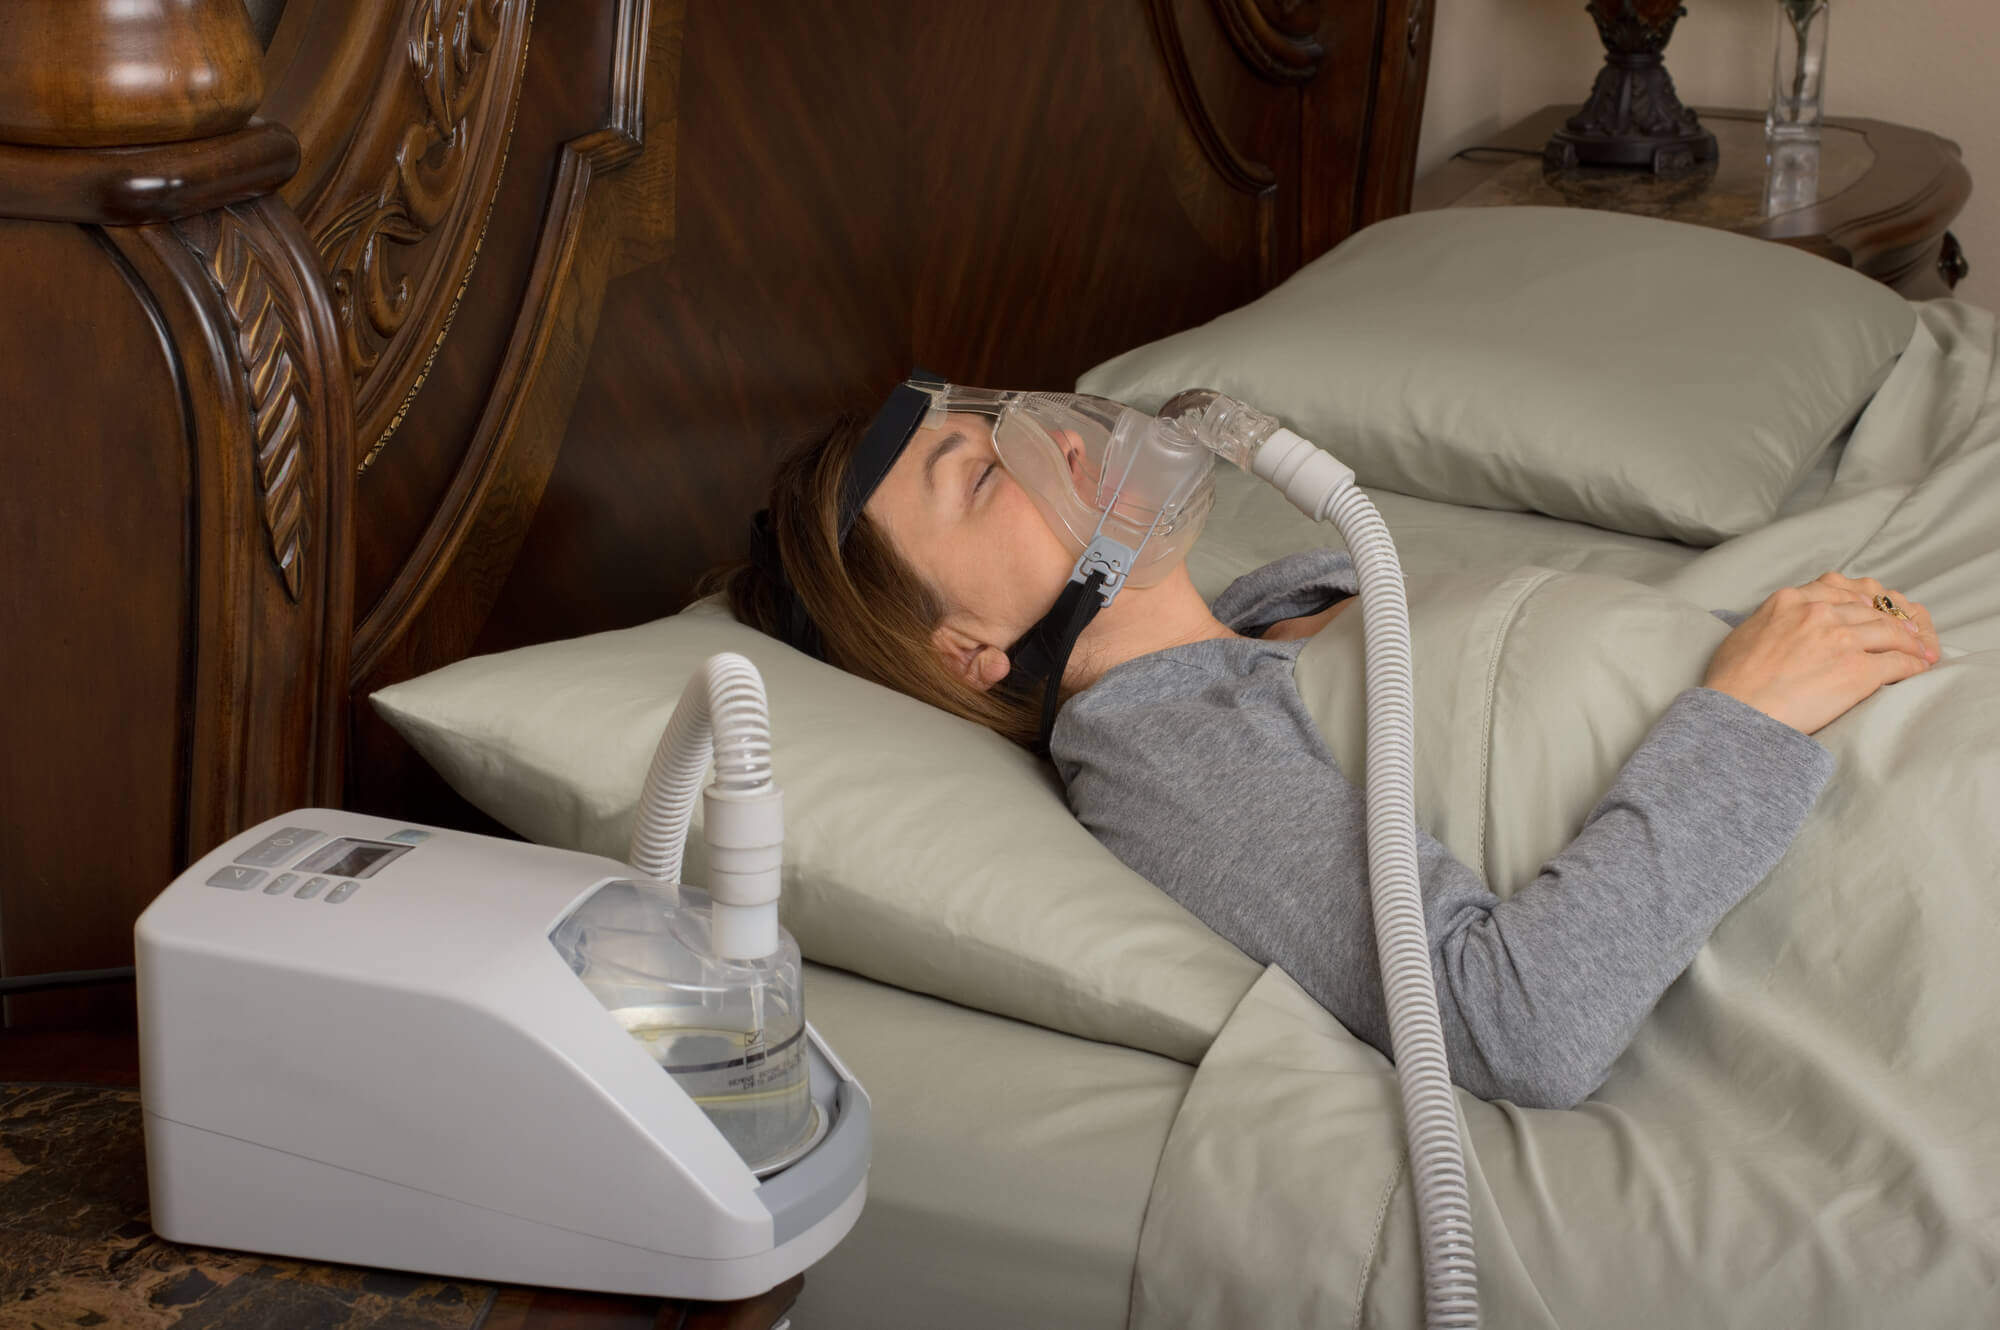 Best sleep apnea treatment in Aventura, FL?